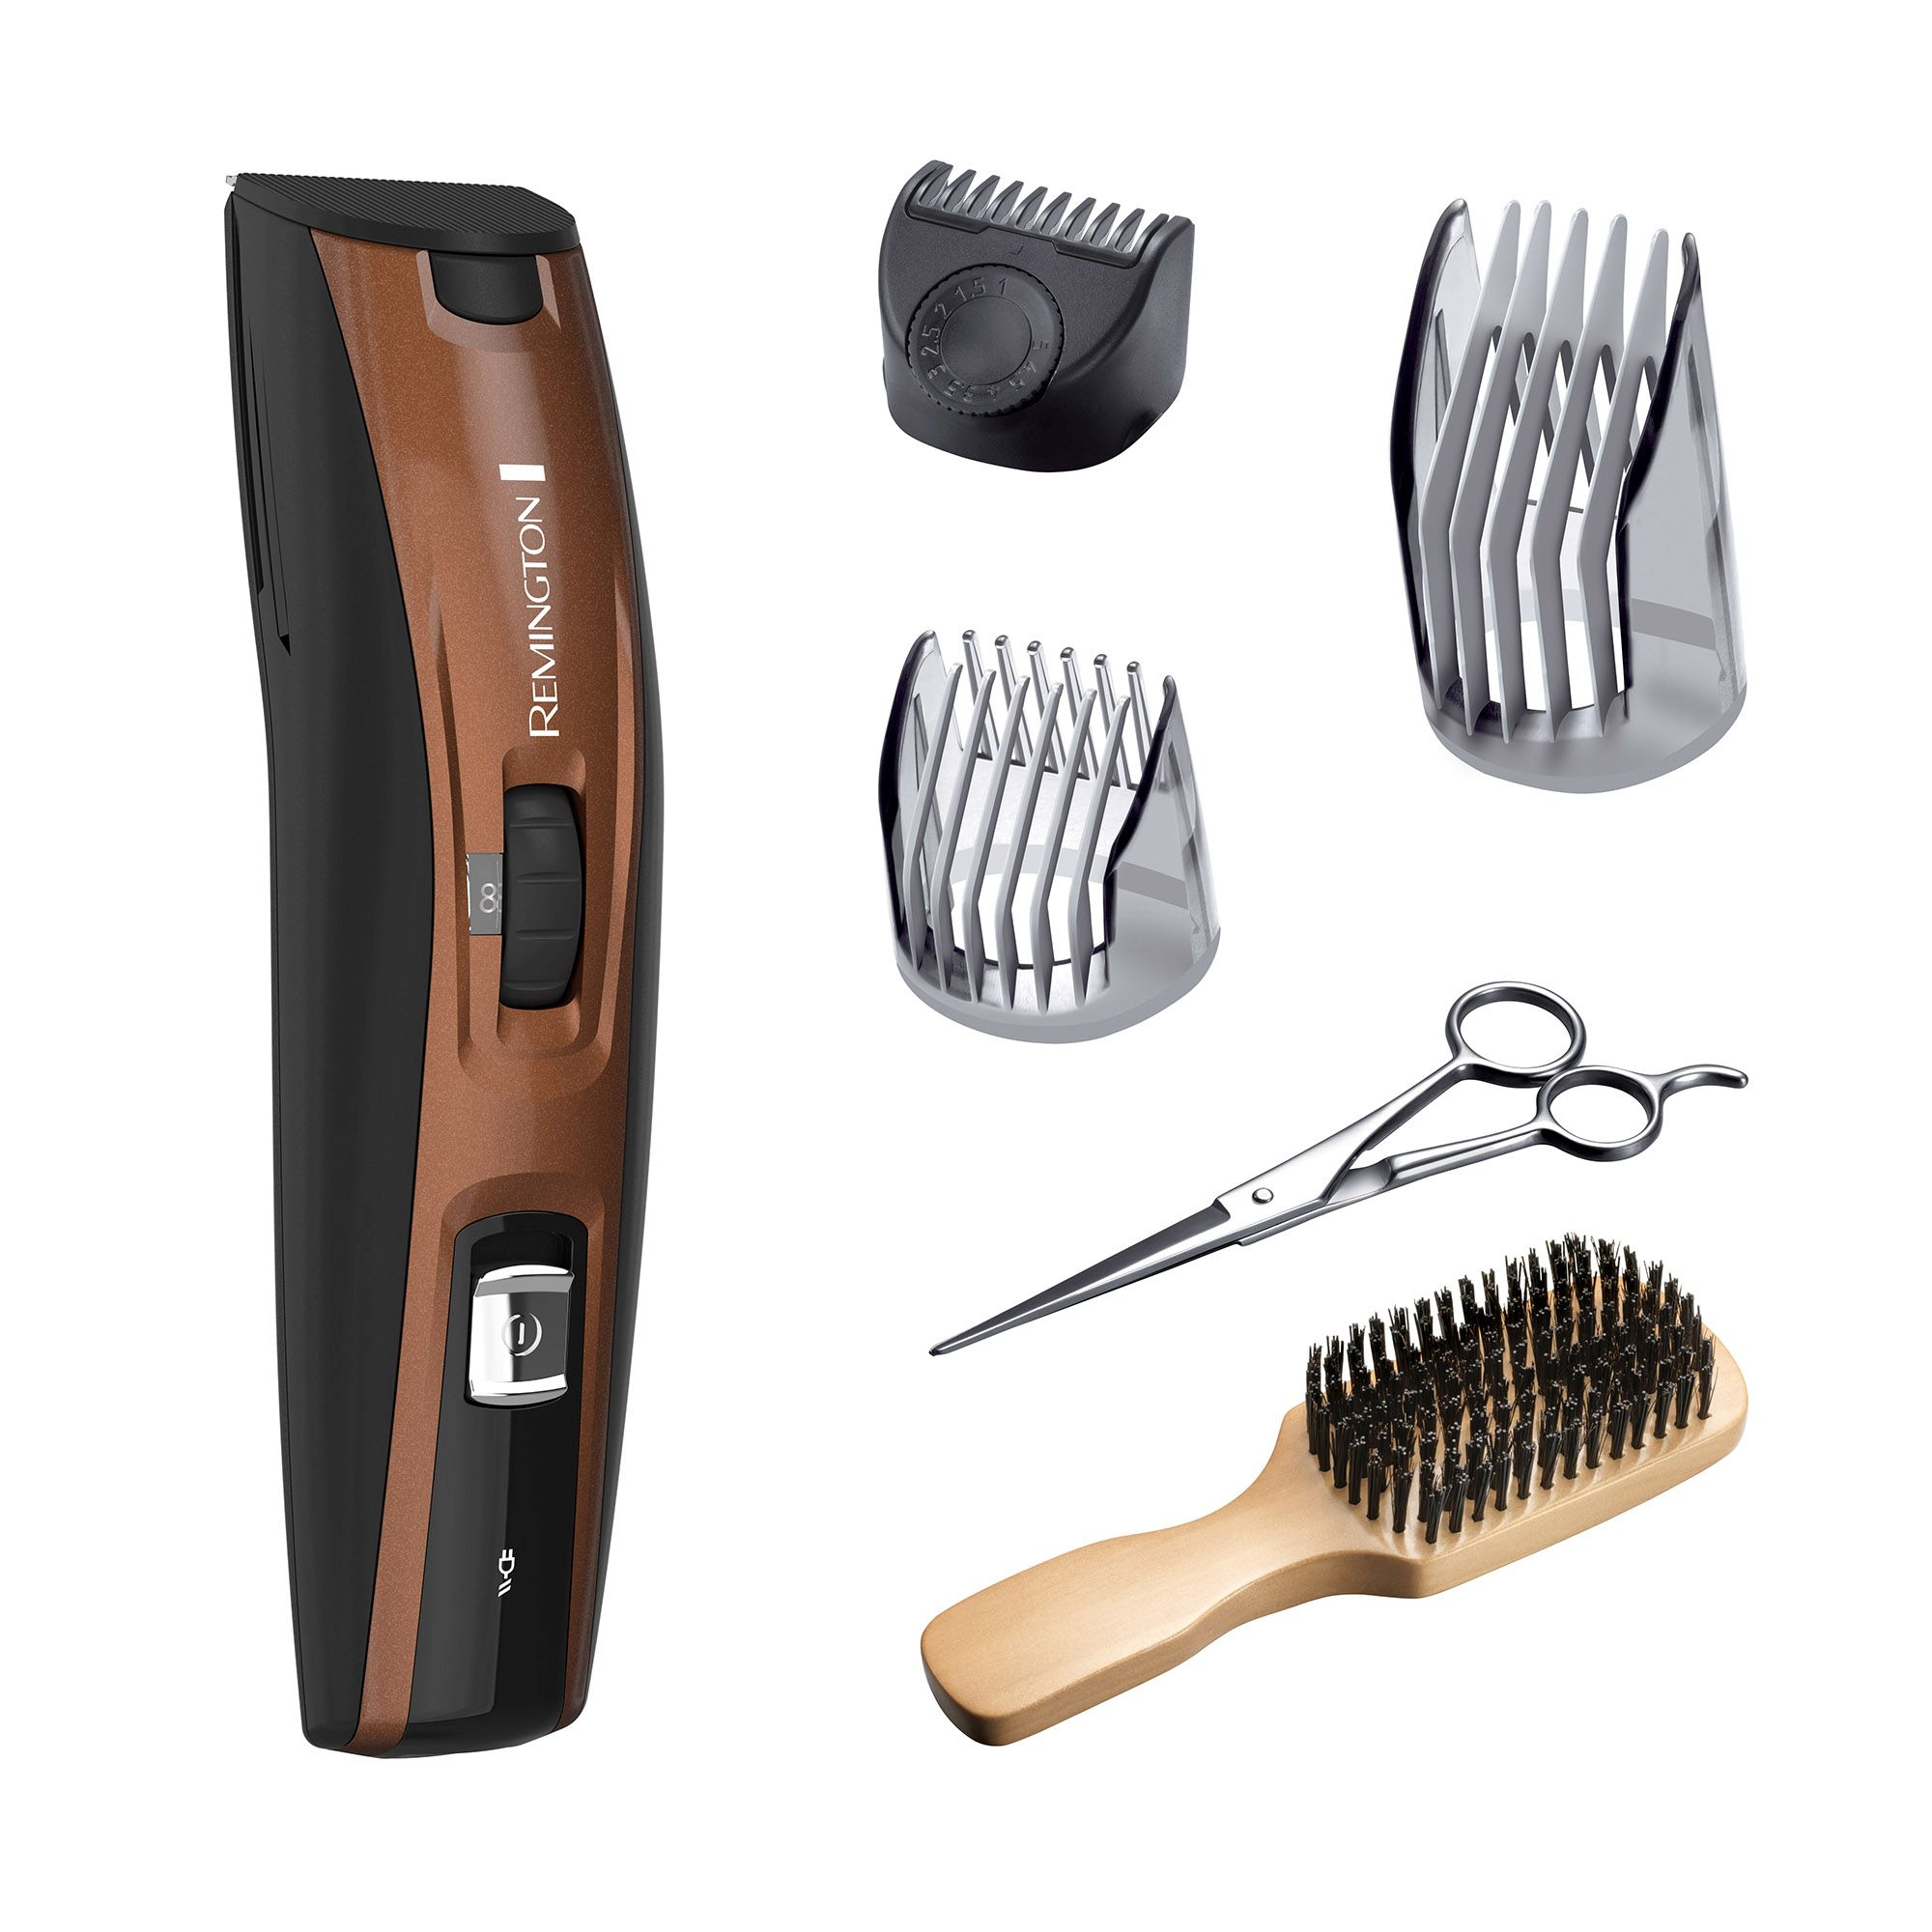 Remington The Beardsman Beard Boss Full Beard Kit with Titanium-Coated Blades, Copper Edition, MB4045A